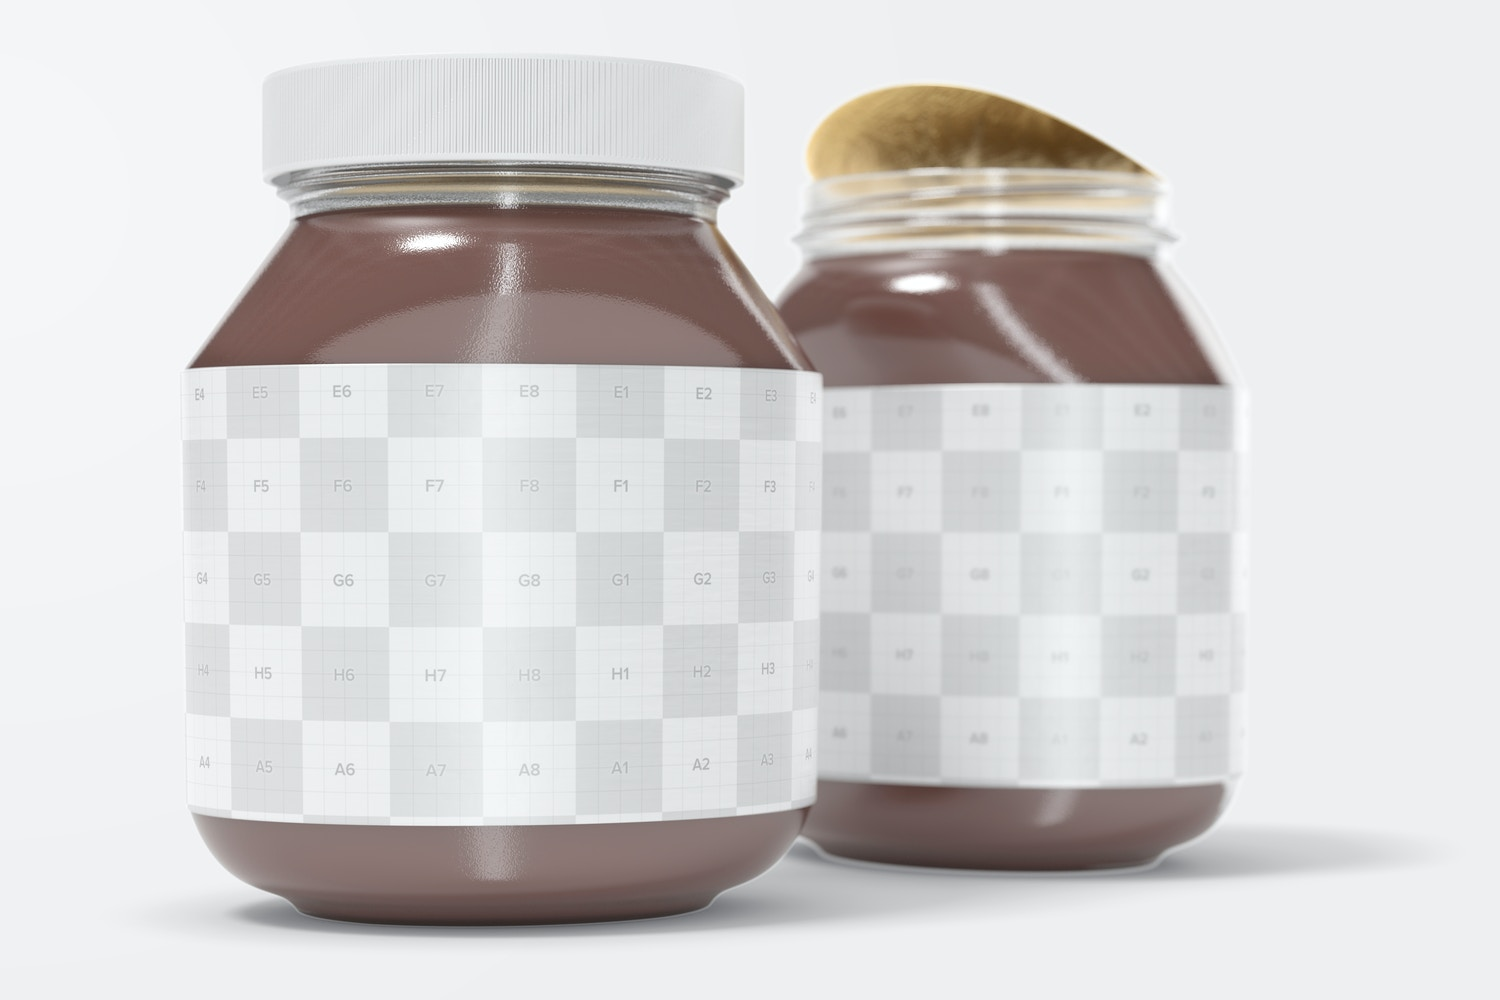 You can edit easily the jar label and lid.